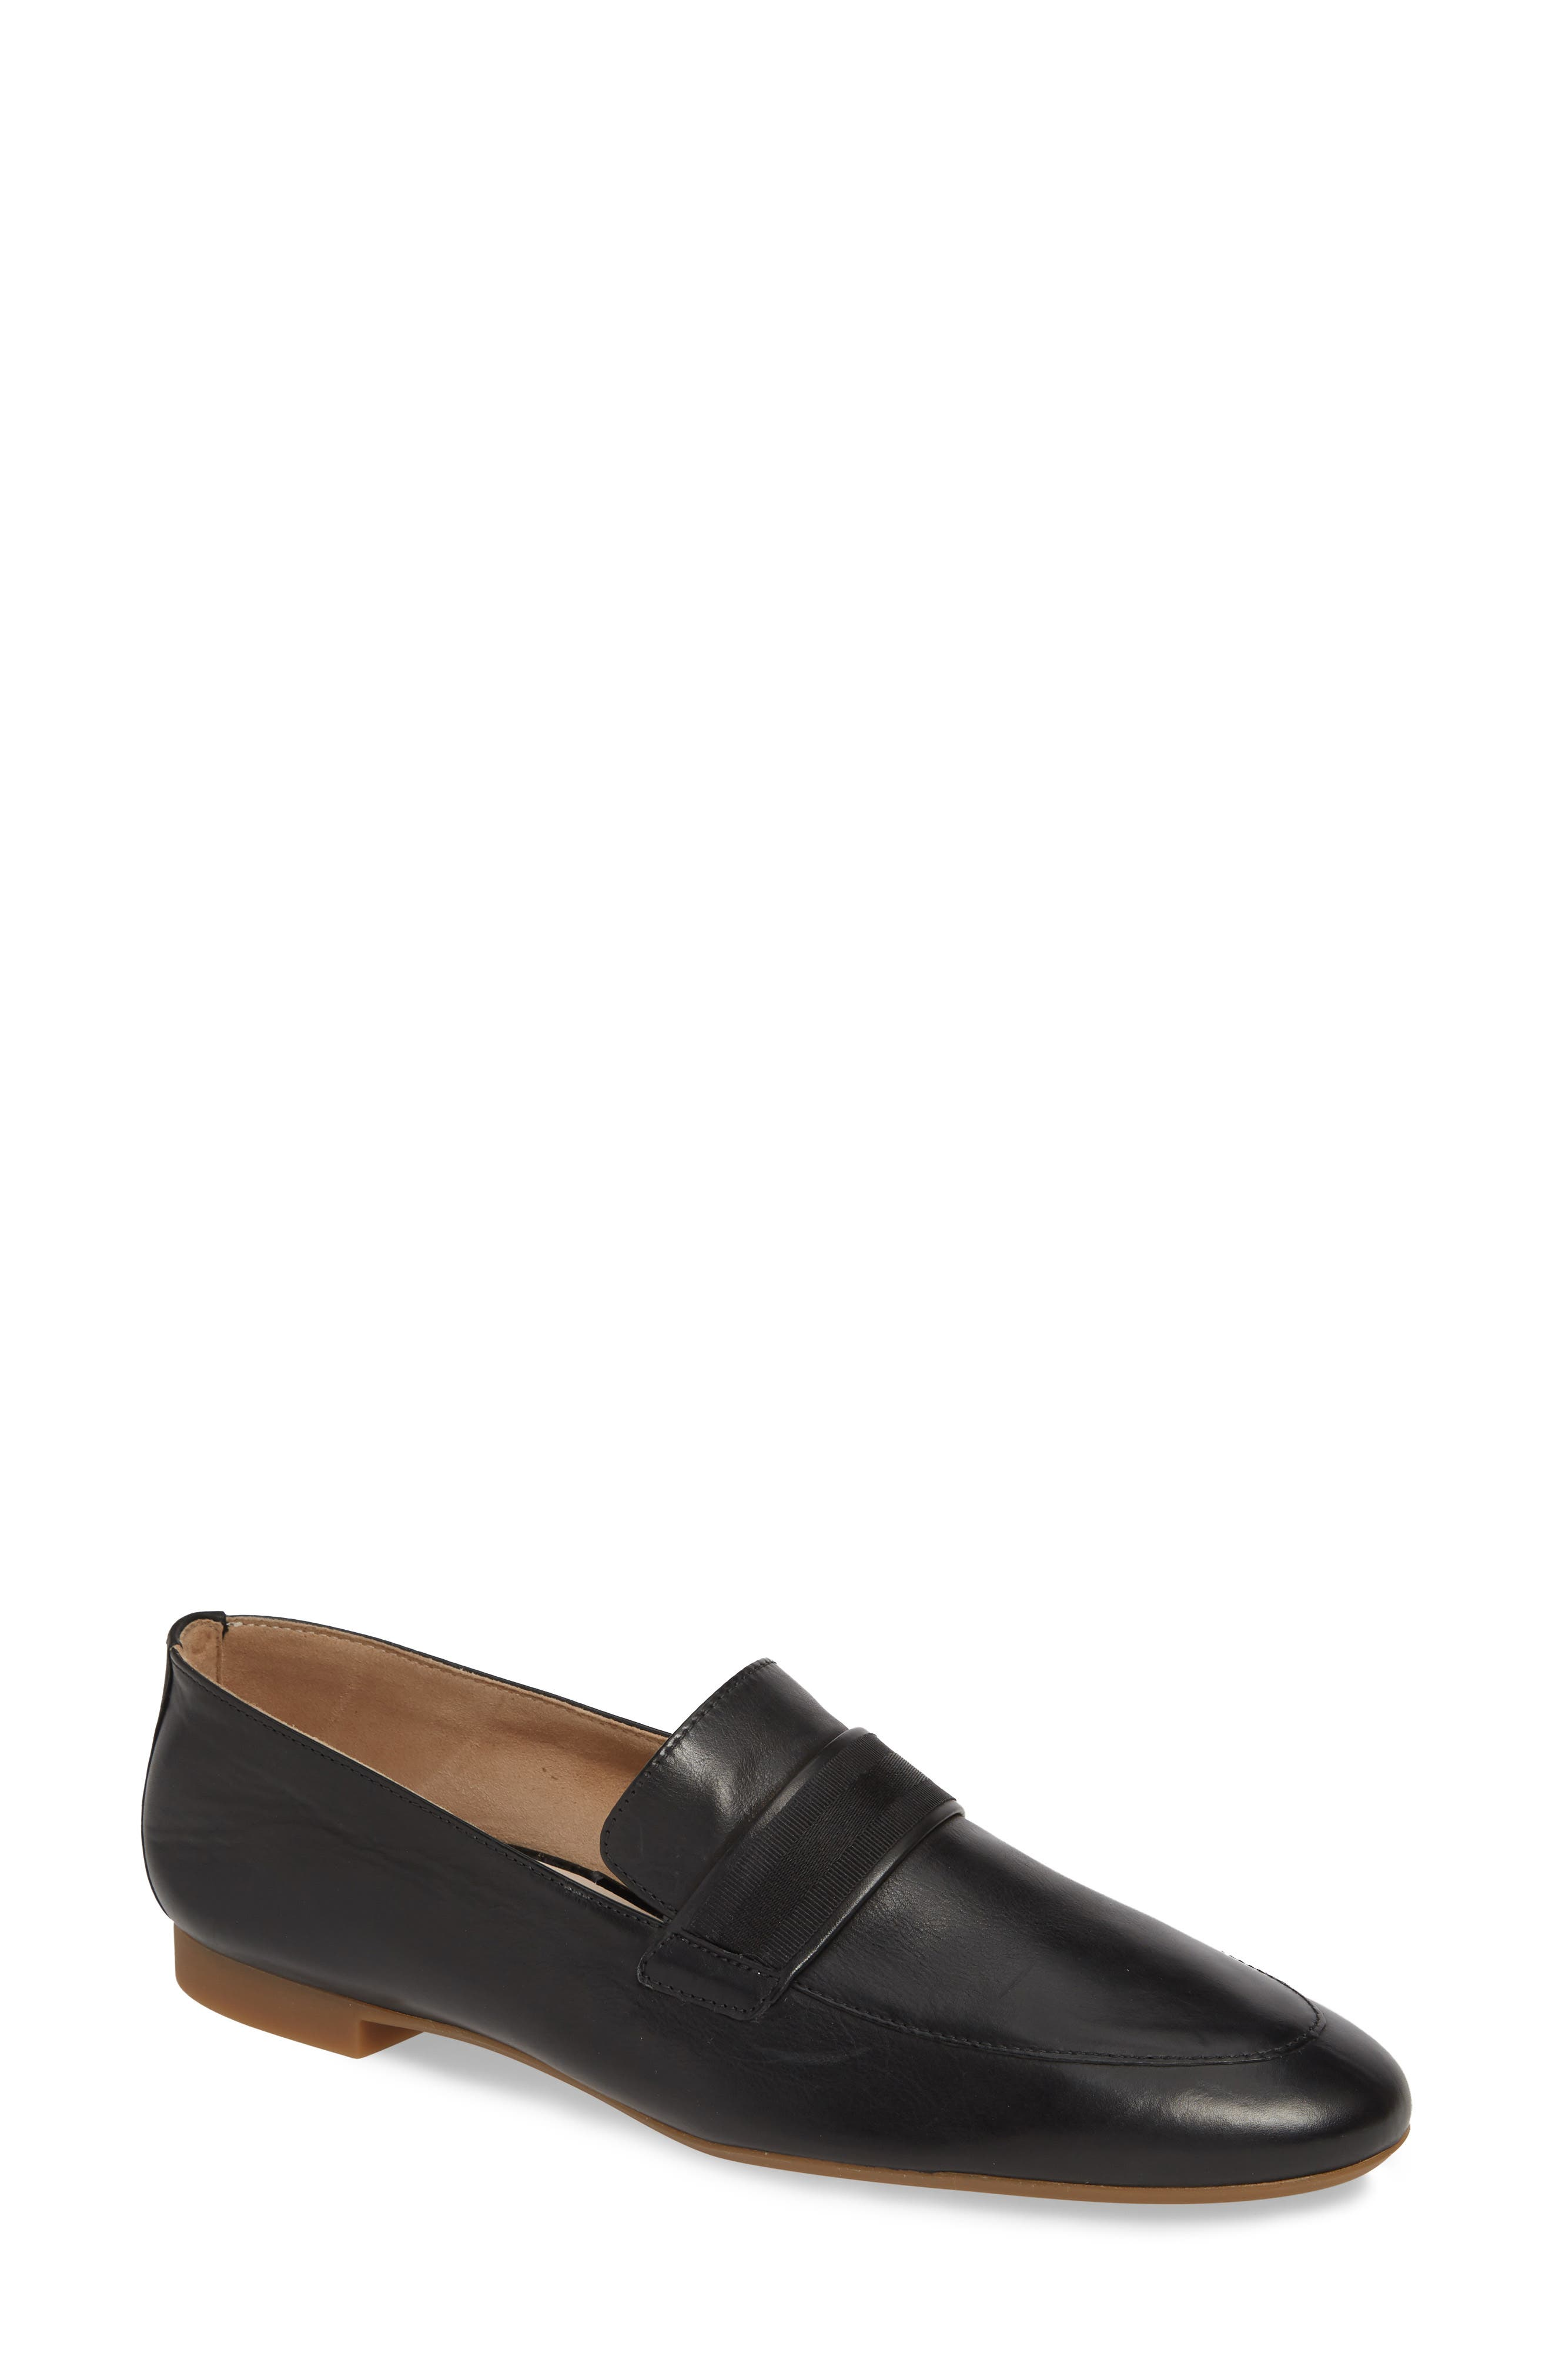 72b436000620 Paul Green Adelle LoaferUS  4UK - Black